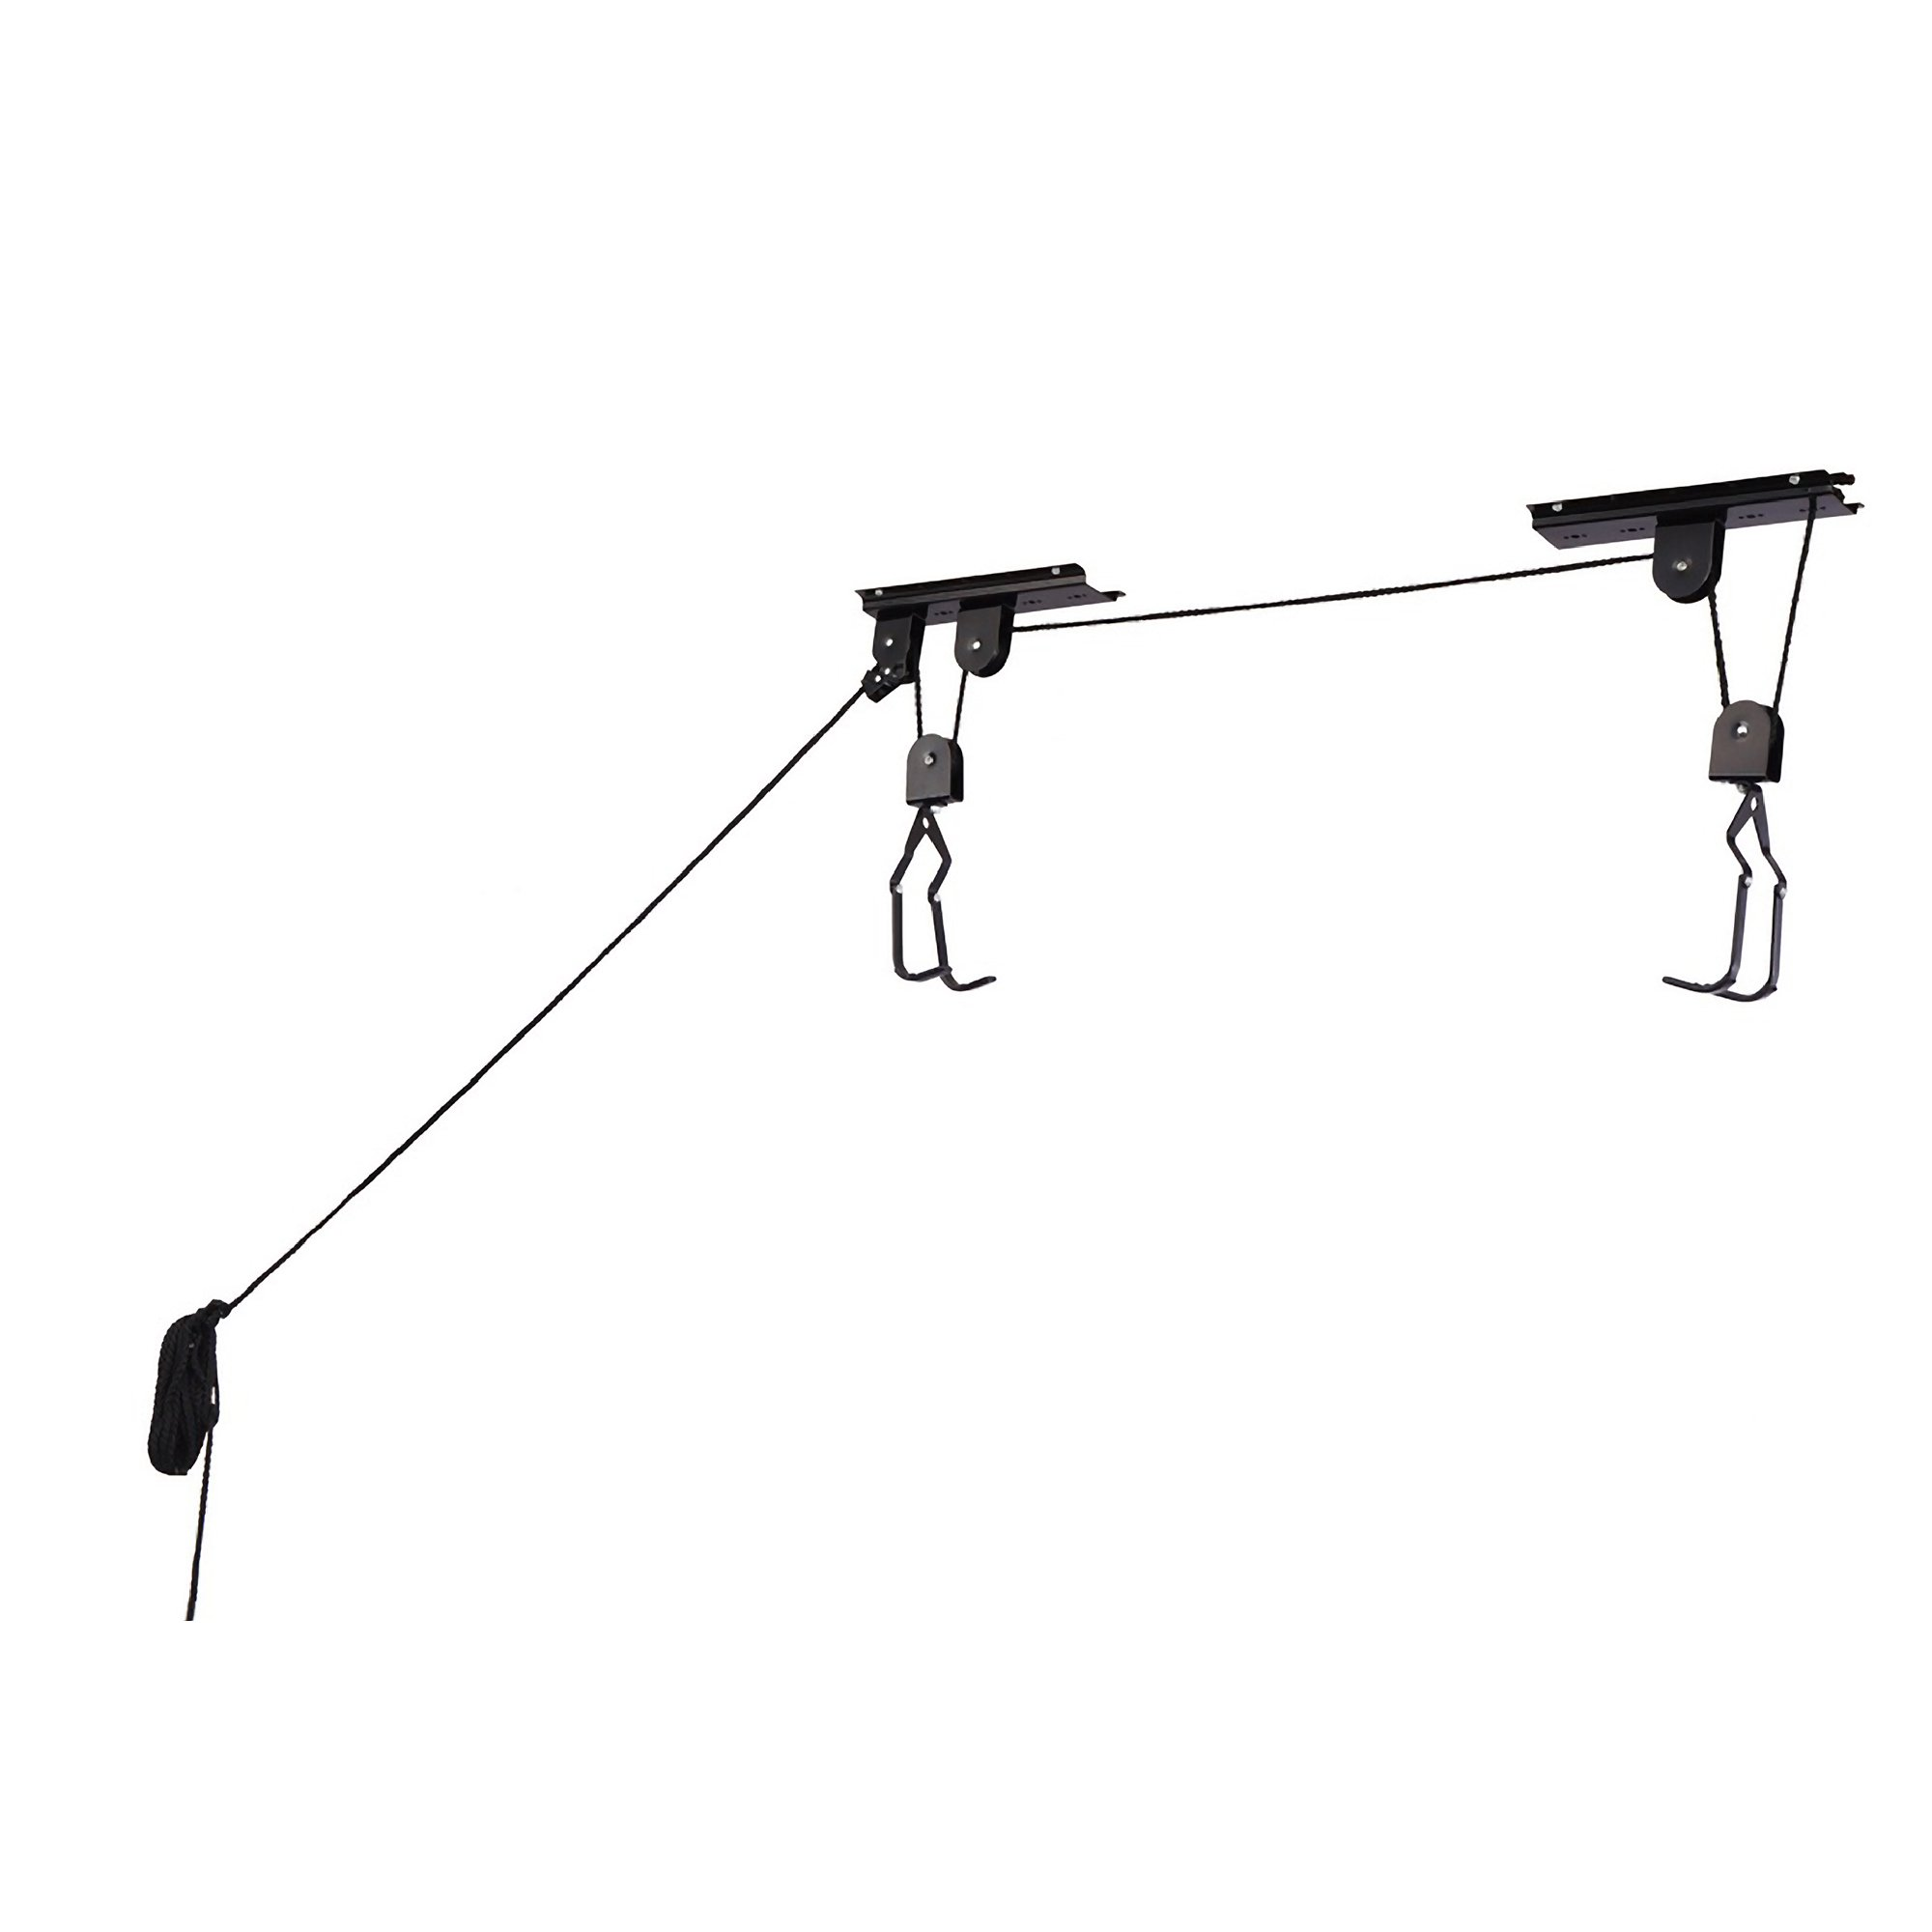 RAD Cycle Products Heavy Duty Bike Lift Hoist For Garage Storage 100lb Capacity Mountain Bicycle Hoist